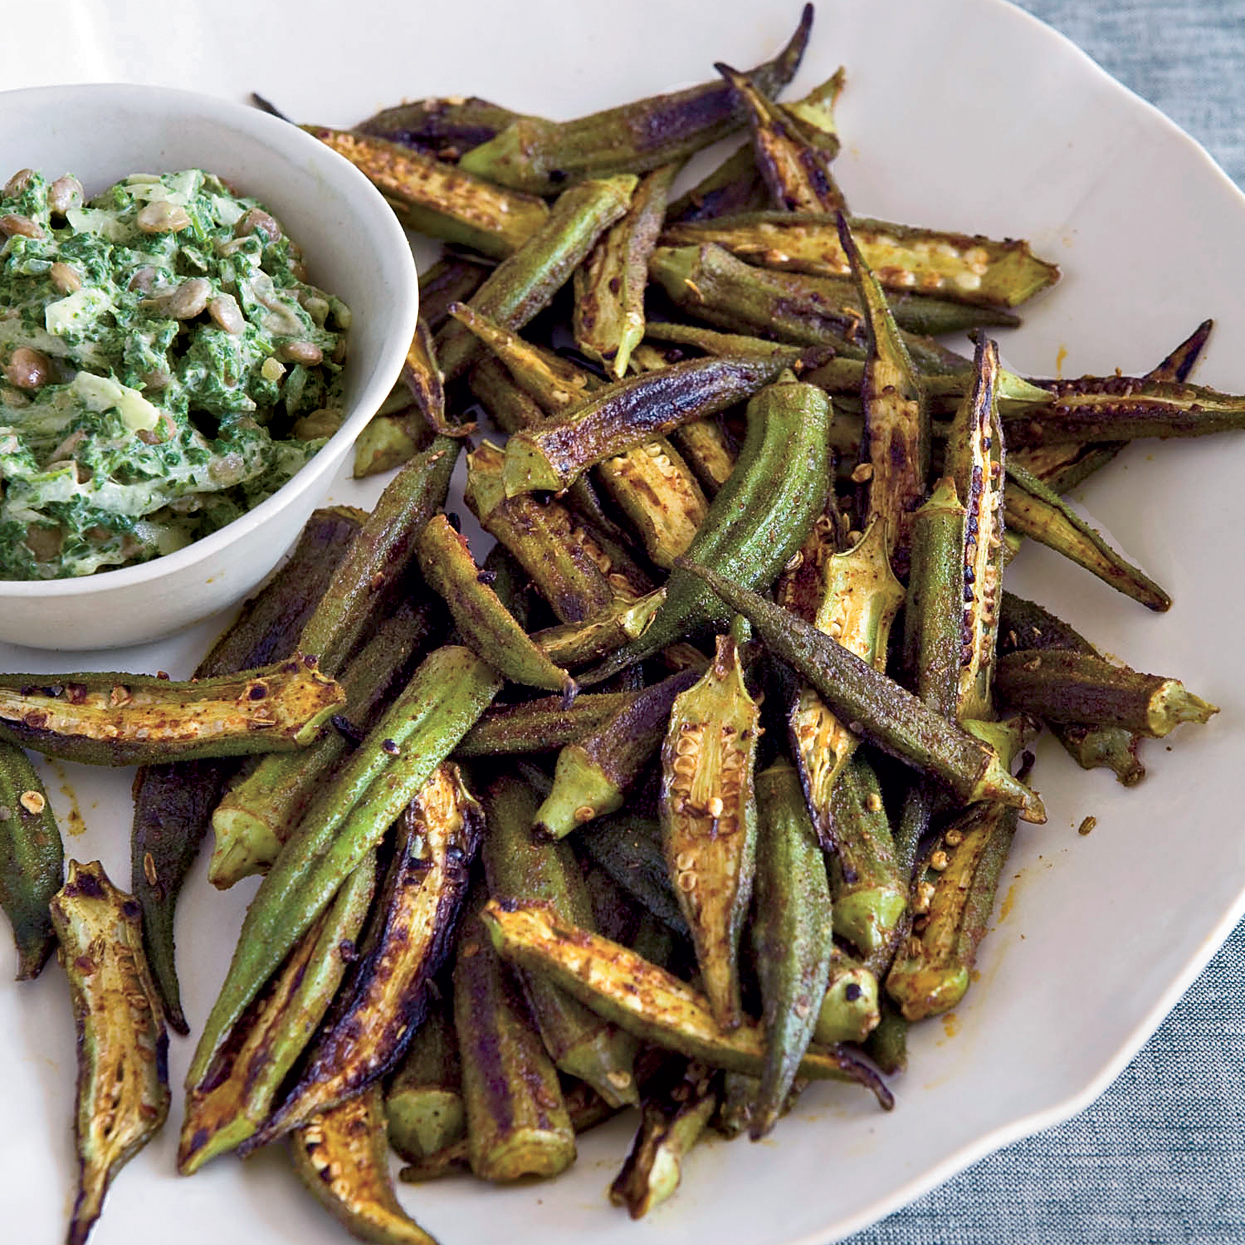 A Carnivore's Best Vegetarian Dishes | Food & Wine